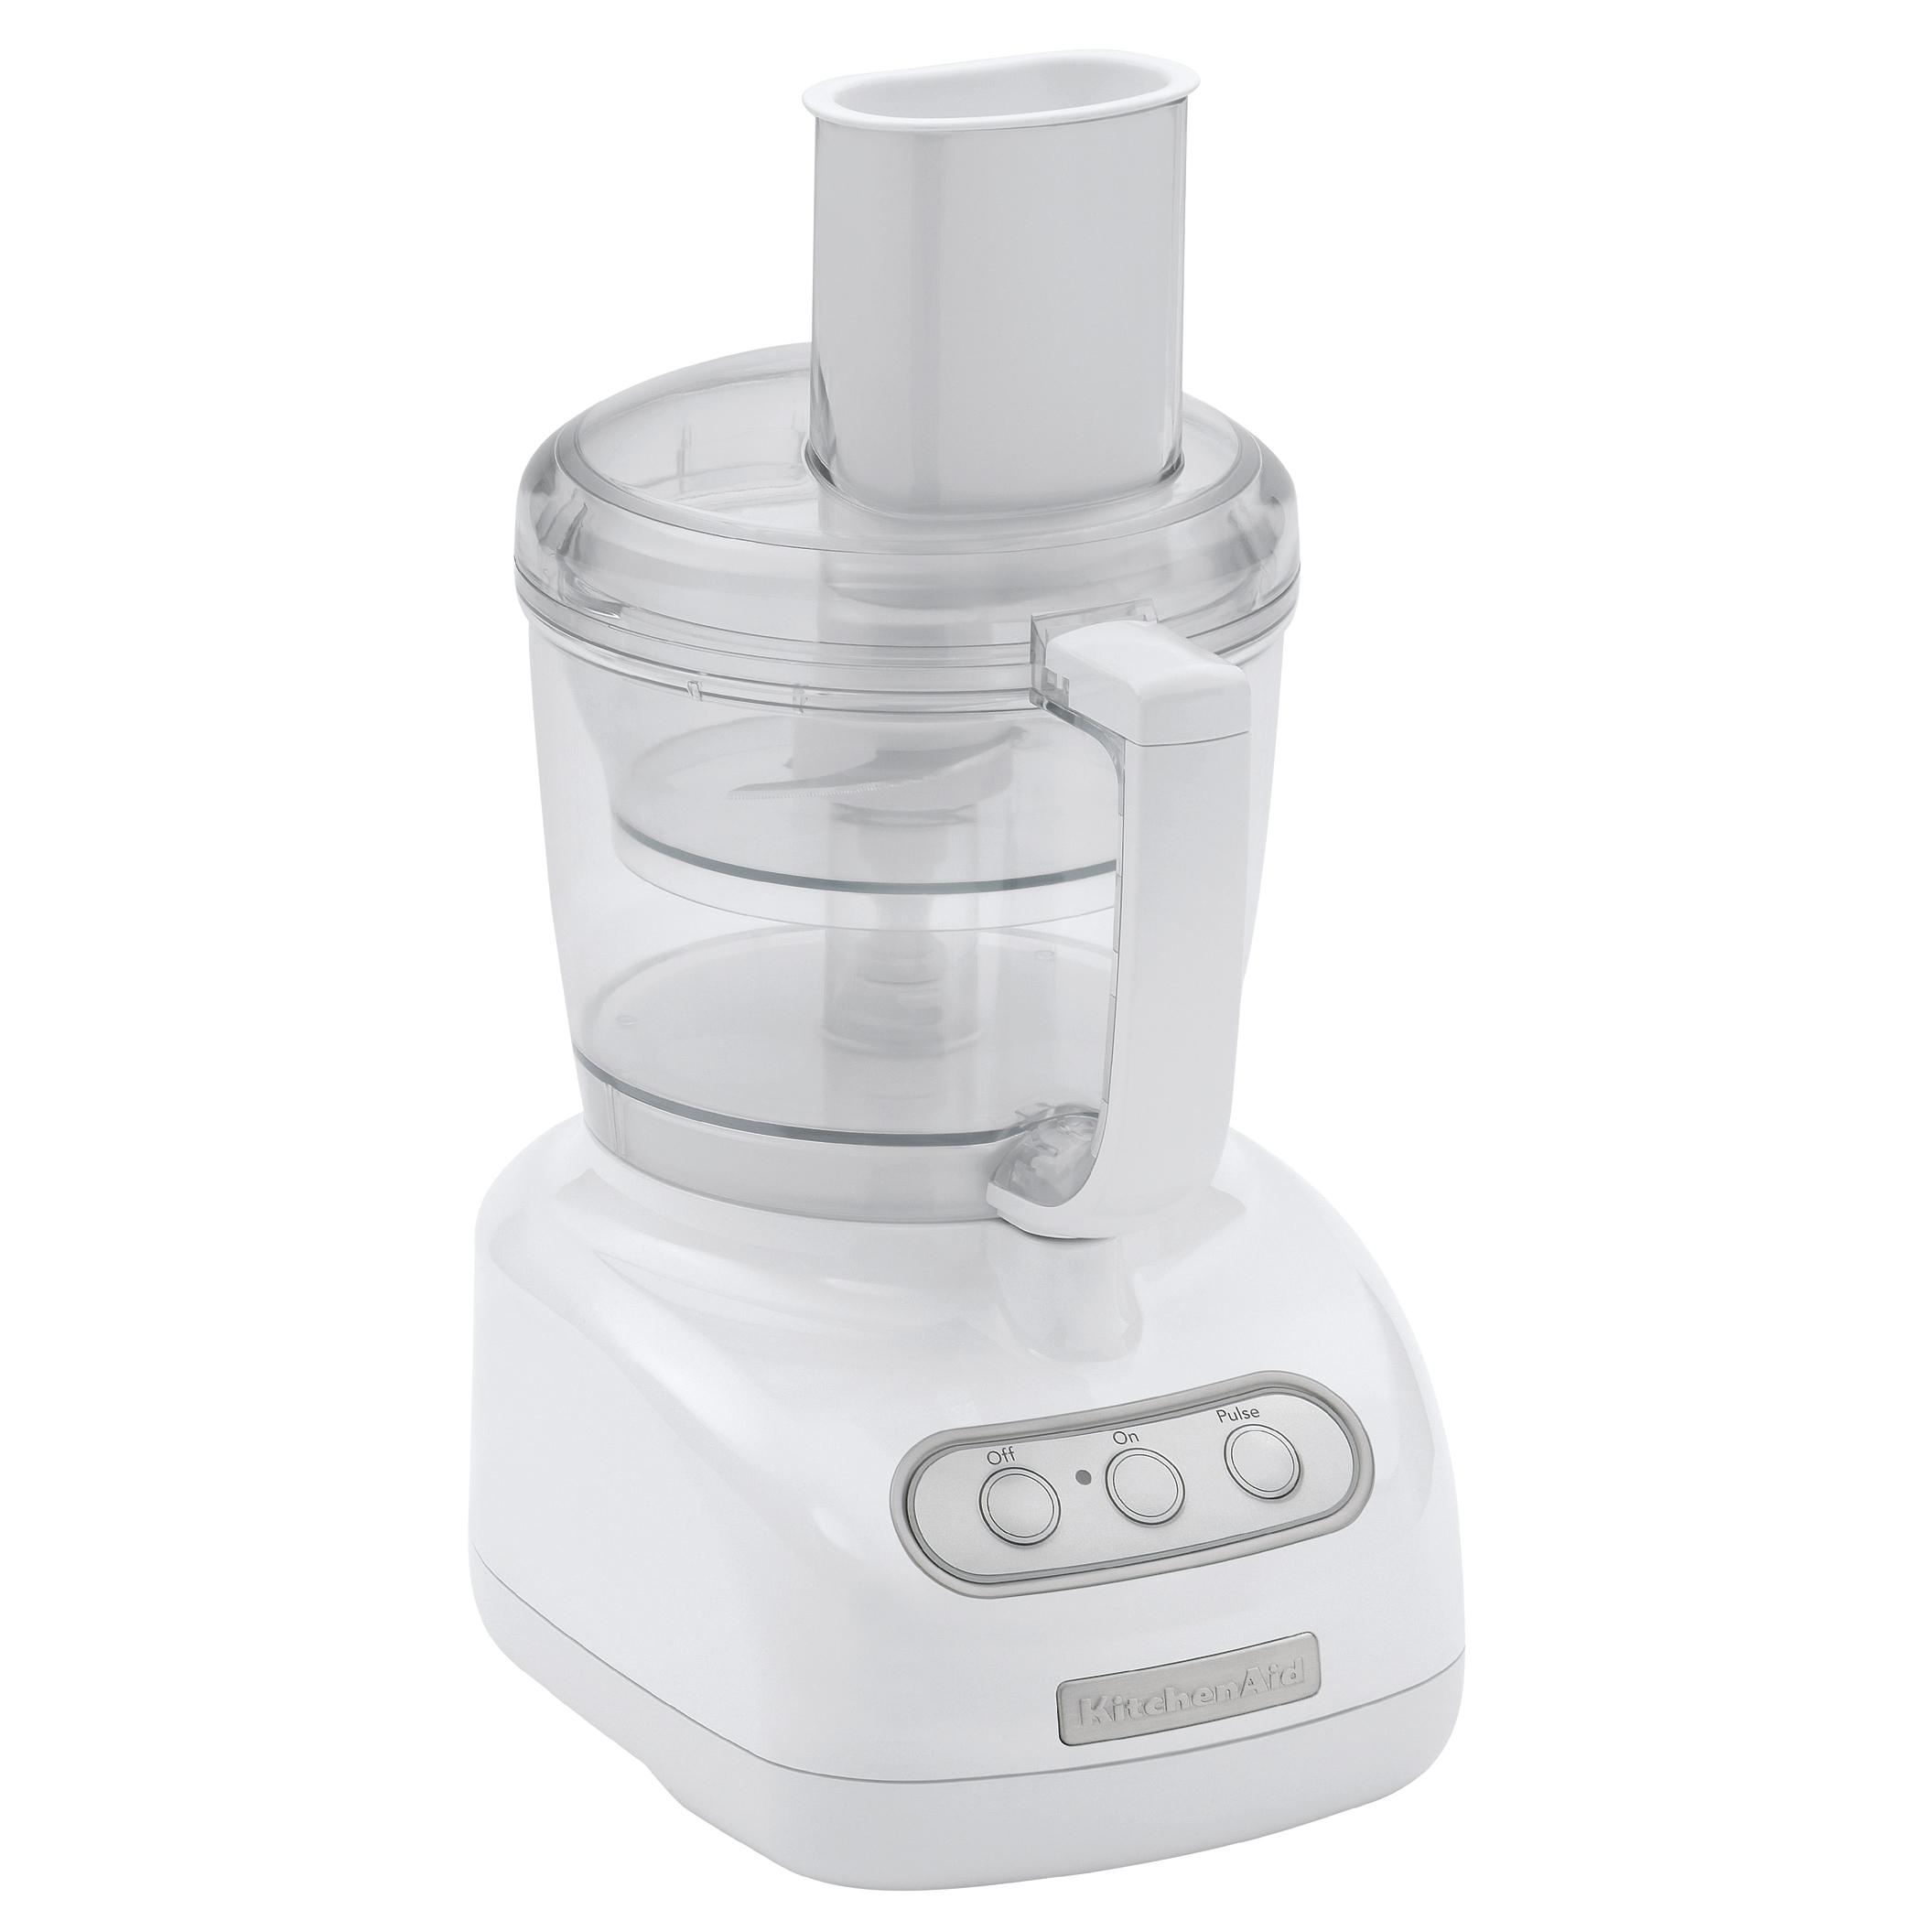 View larger for Kitchenaid food processor